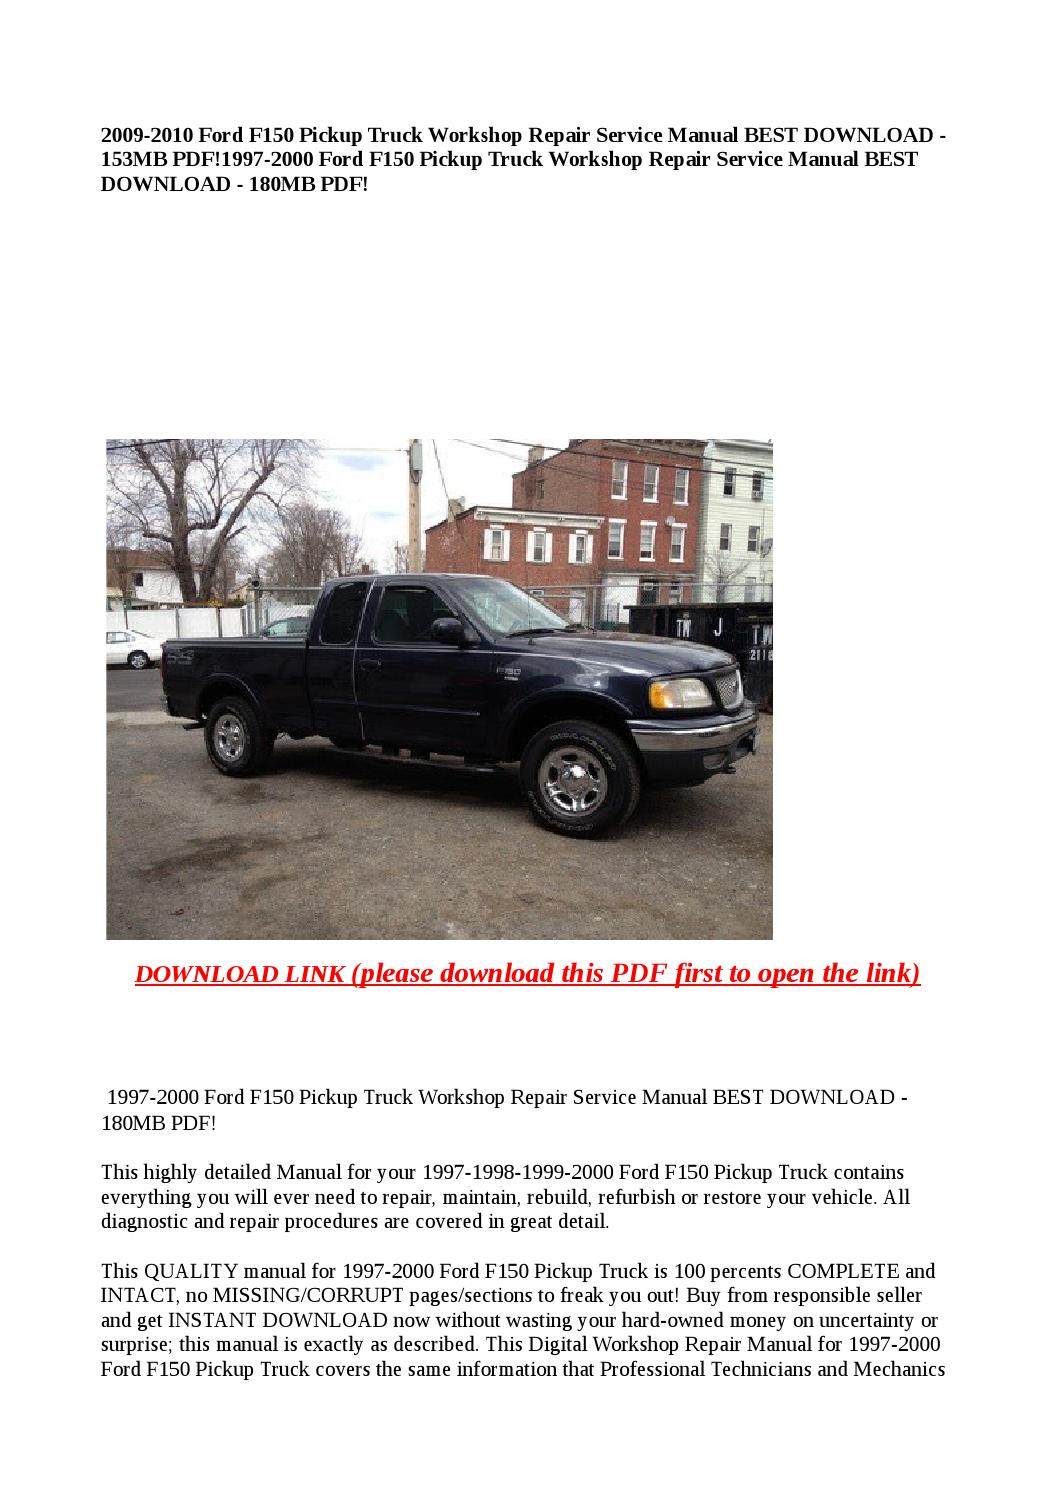 1997 2000 ford f150 pickup truck workshop repair service manual best  download 180mb pdf! by dale - issuu